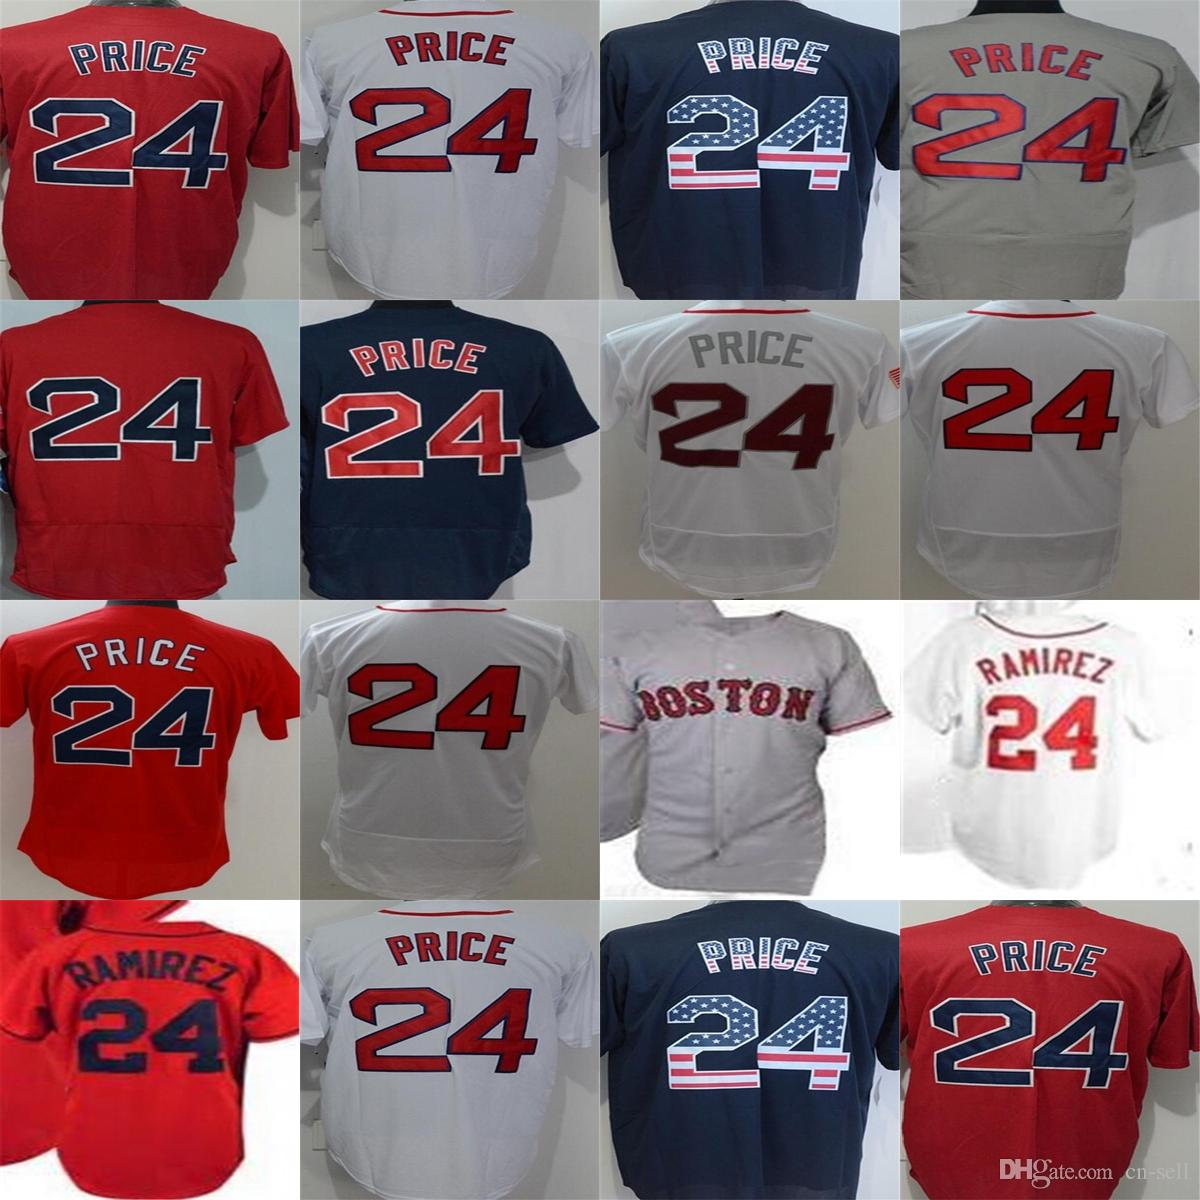 7076694f8d3 ... cool base jersey  2018 2017 boston 24 manny ramirez david price mens  womens youth home away navy blue white